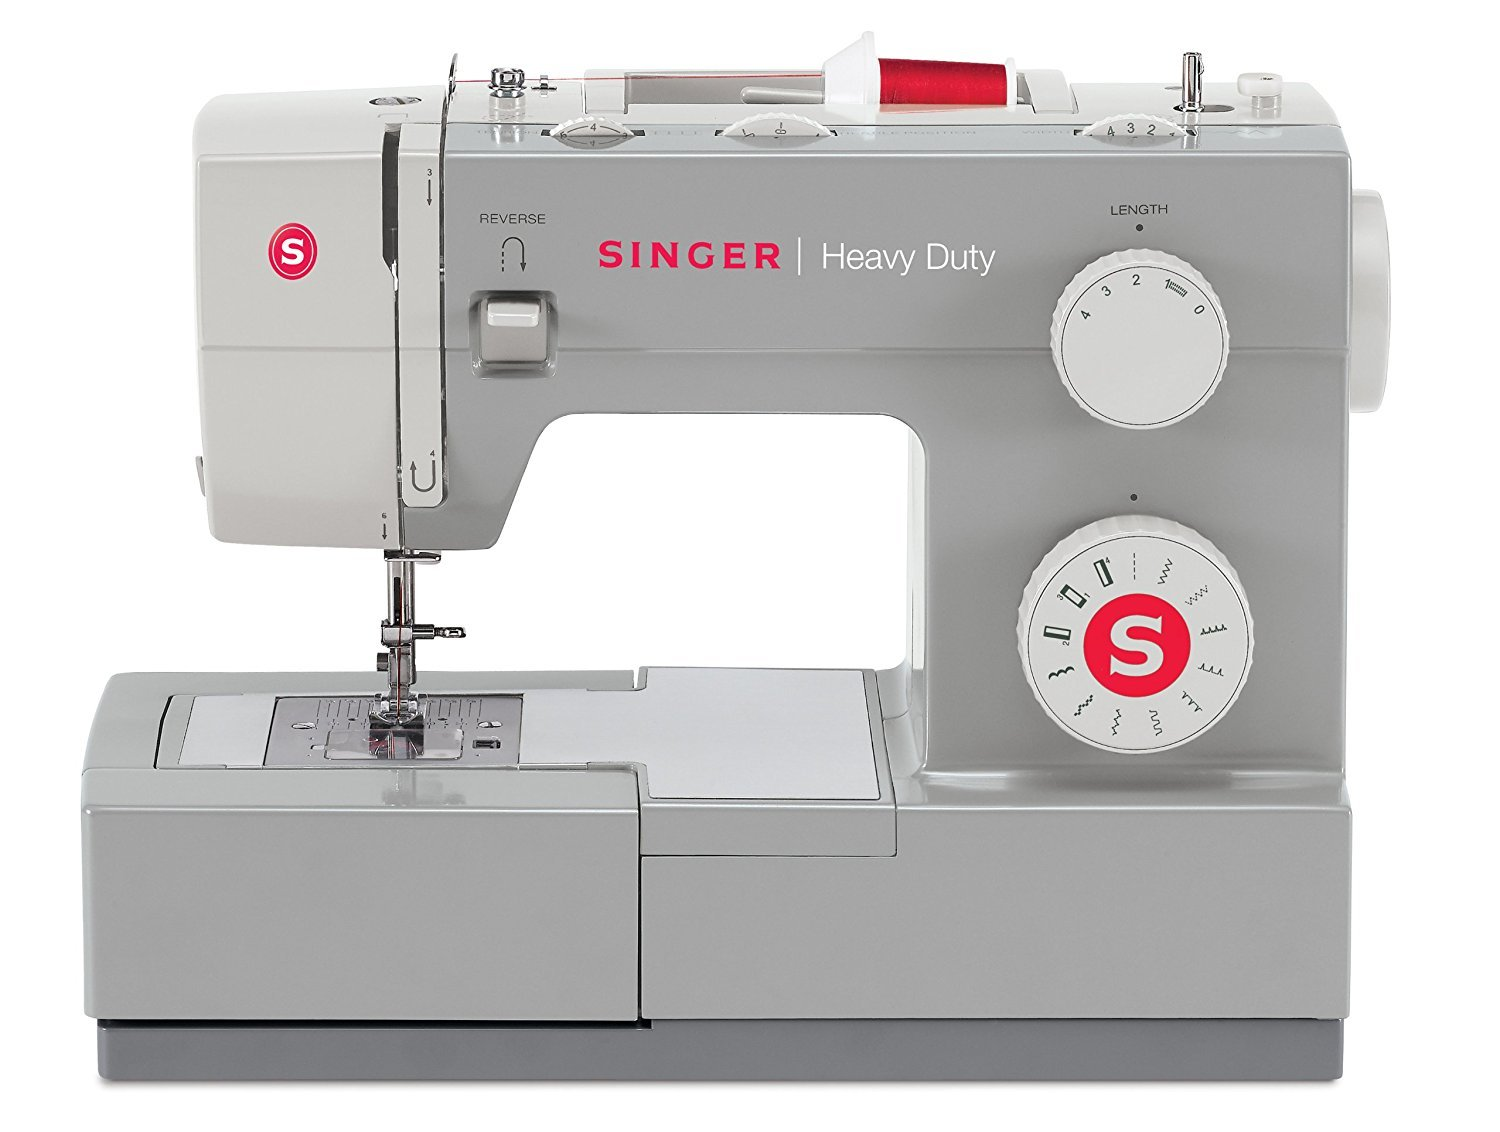 Top 9 Best Singer Sewing Machine Reviews in 2019 5